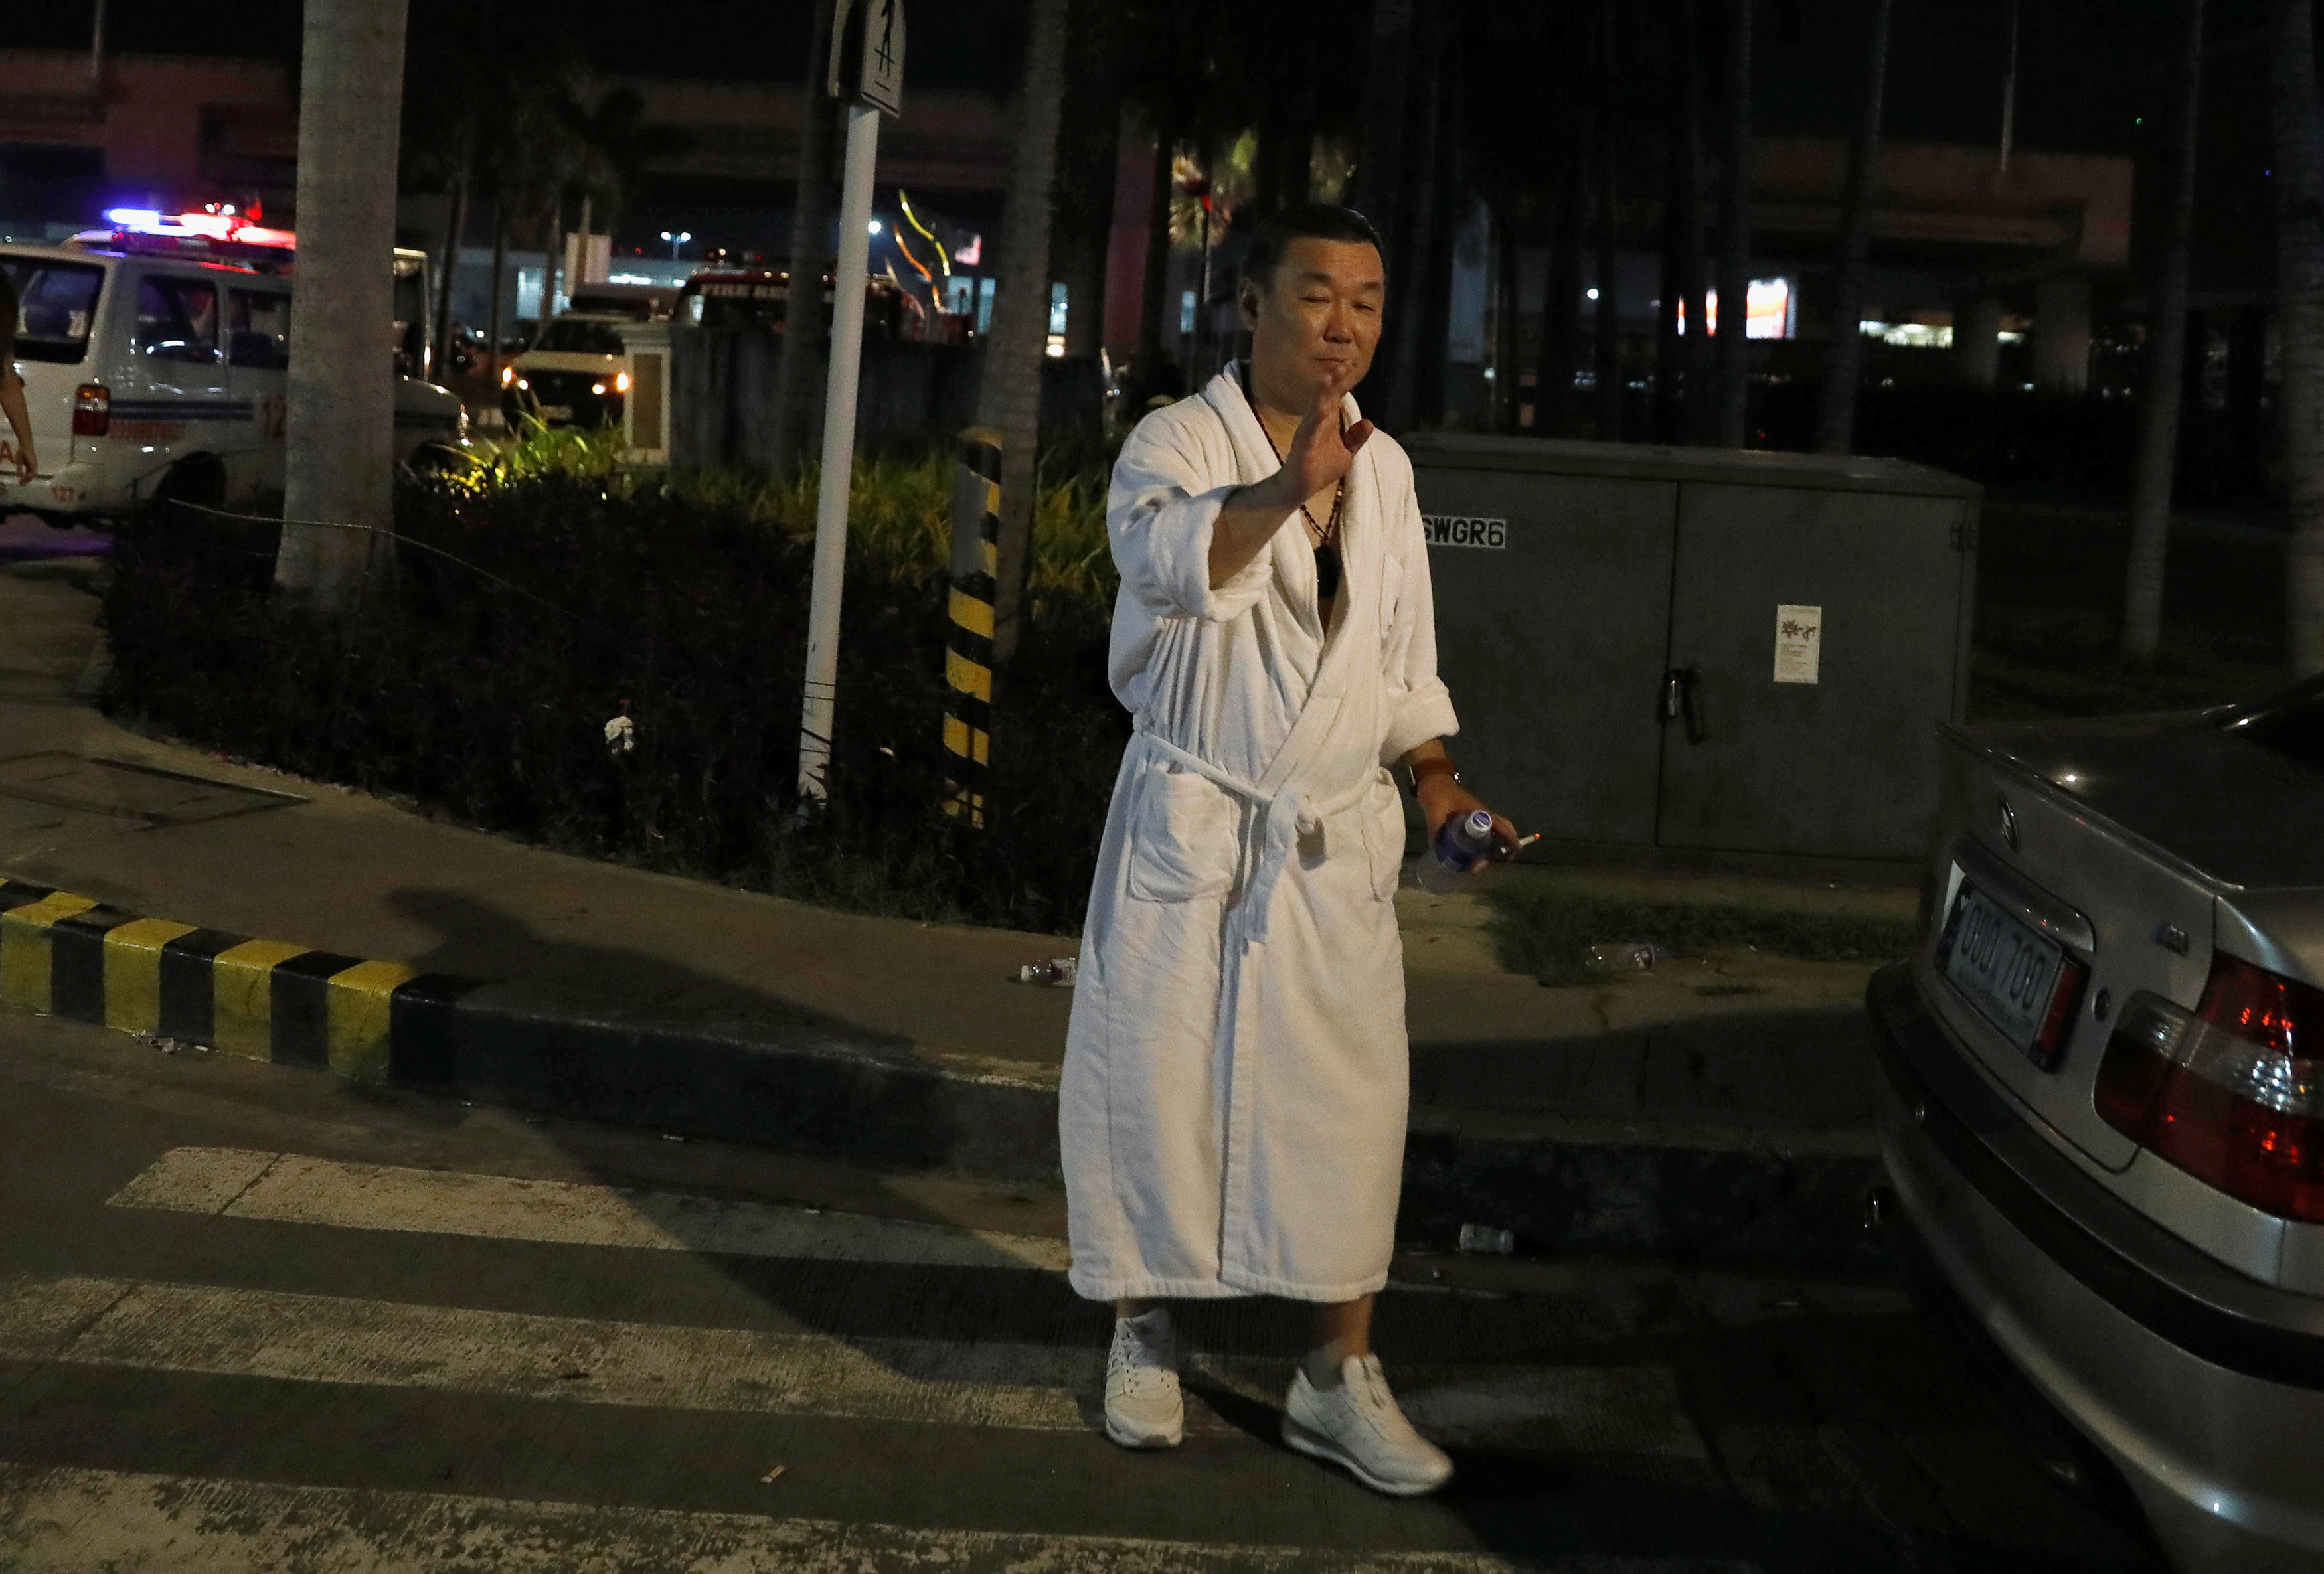 A tourist wearing a bathrobe gestures after he was evacuated from the Resorts World Manila after gunshots and explosions were heard in Pasay City, Metro Manila, Philippines on June 2, 2017. (REUTERS/Erik De Castro)